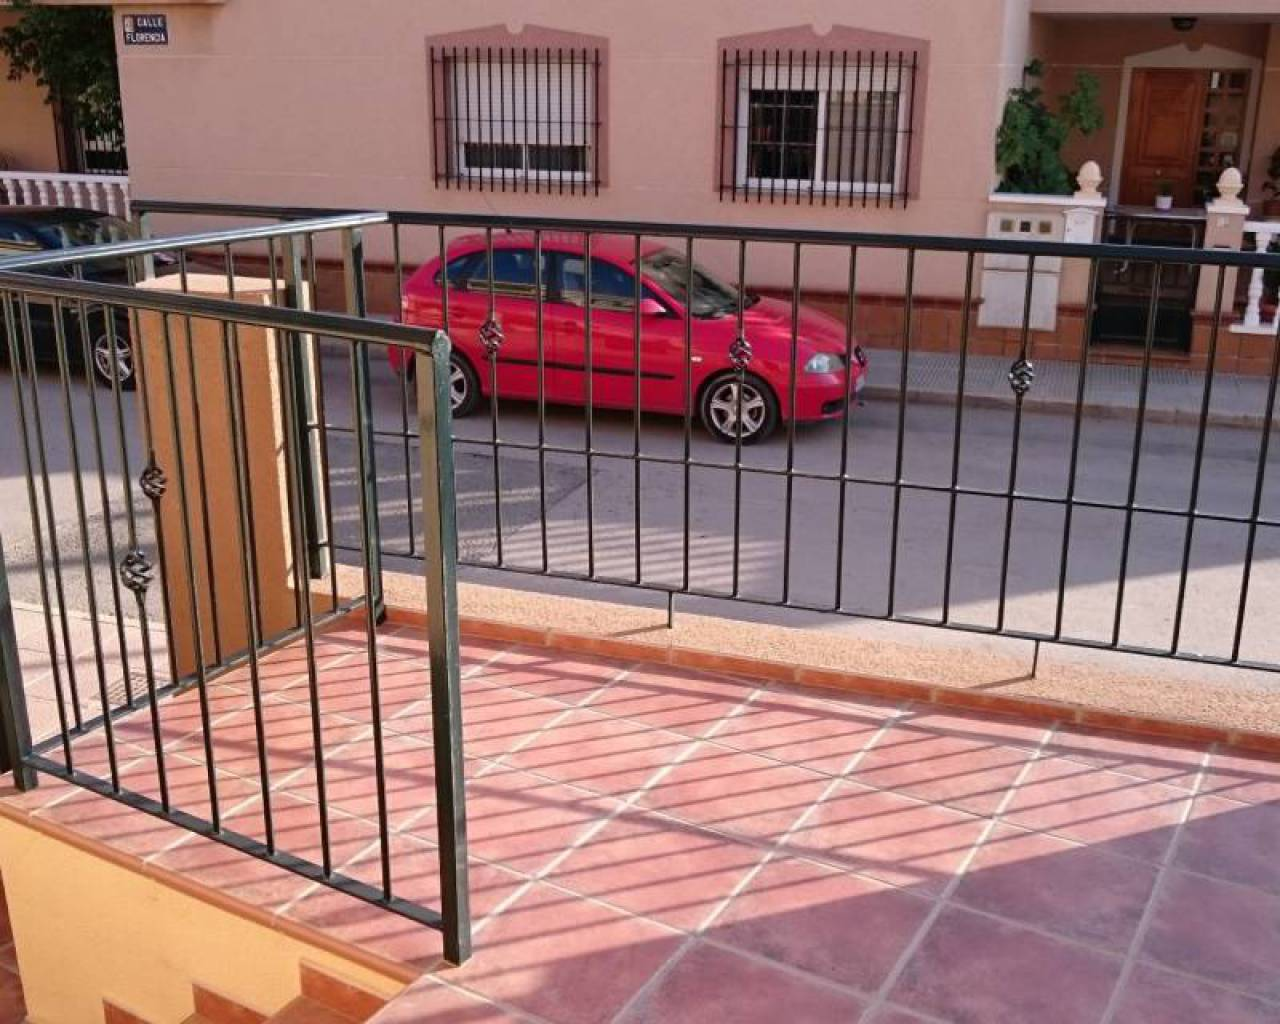 Sale - Townhouse - Torre Pacheco